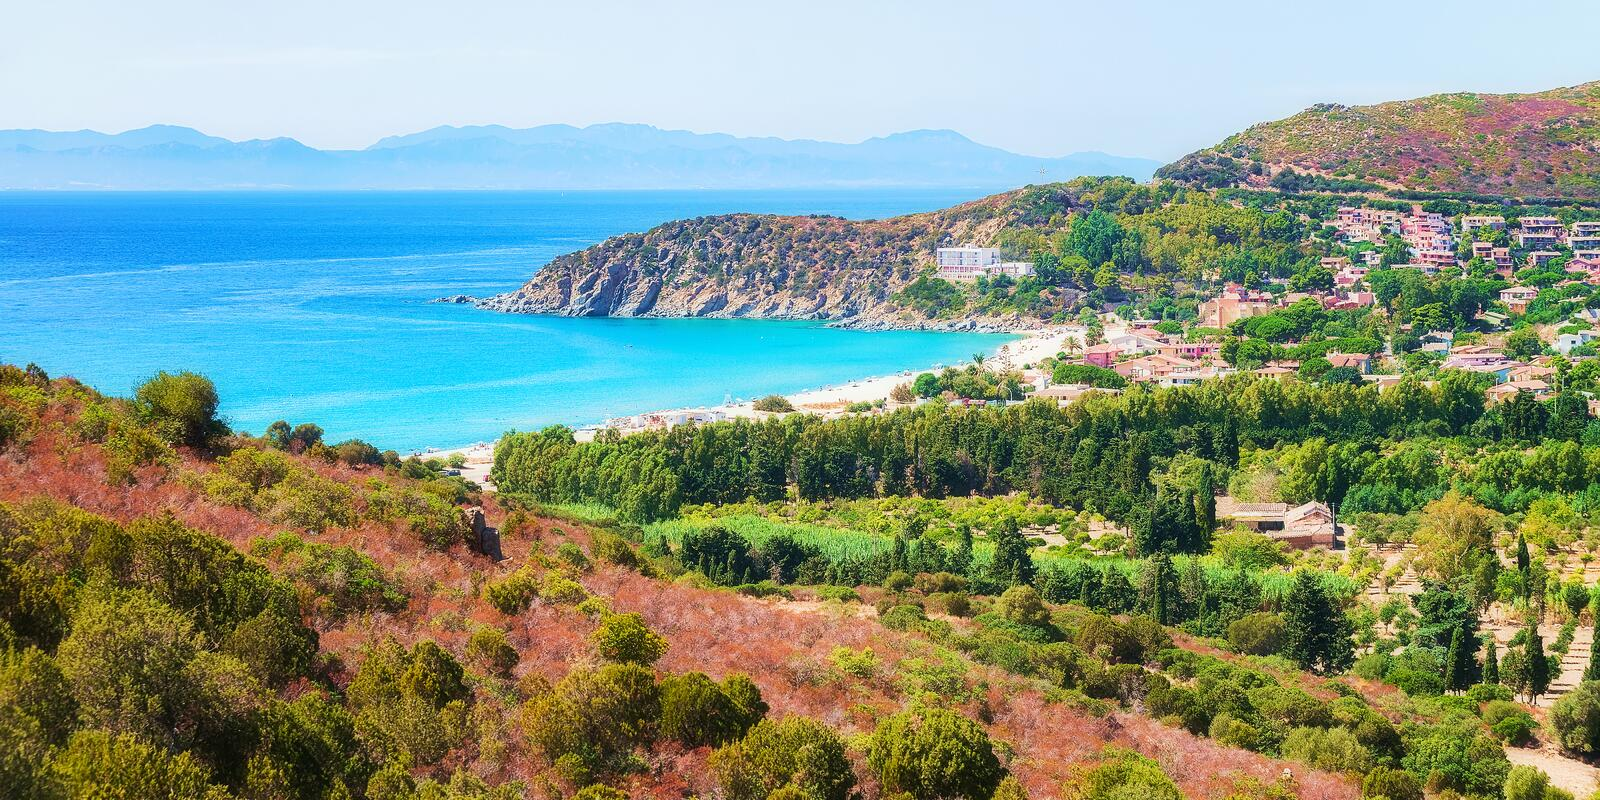 Sailing cruise in Corsica and Sardinia - One way from Sanremo to Cagliari in the heart of the Mediterranean